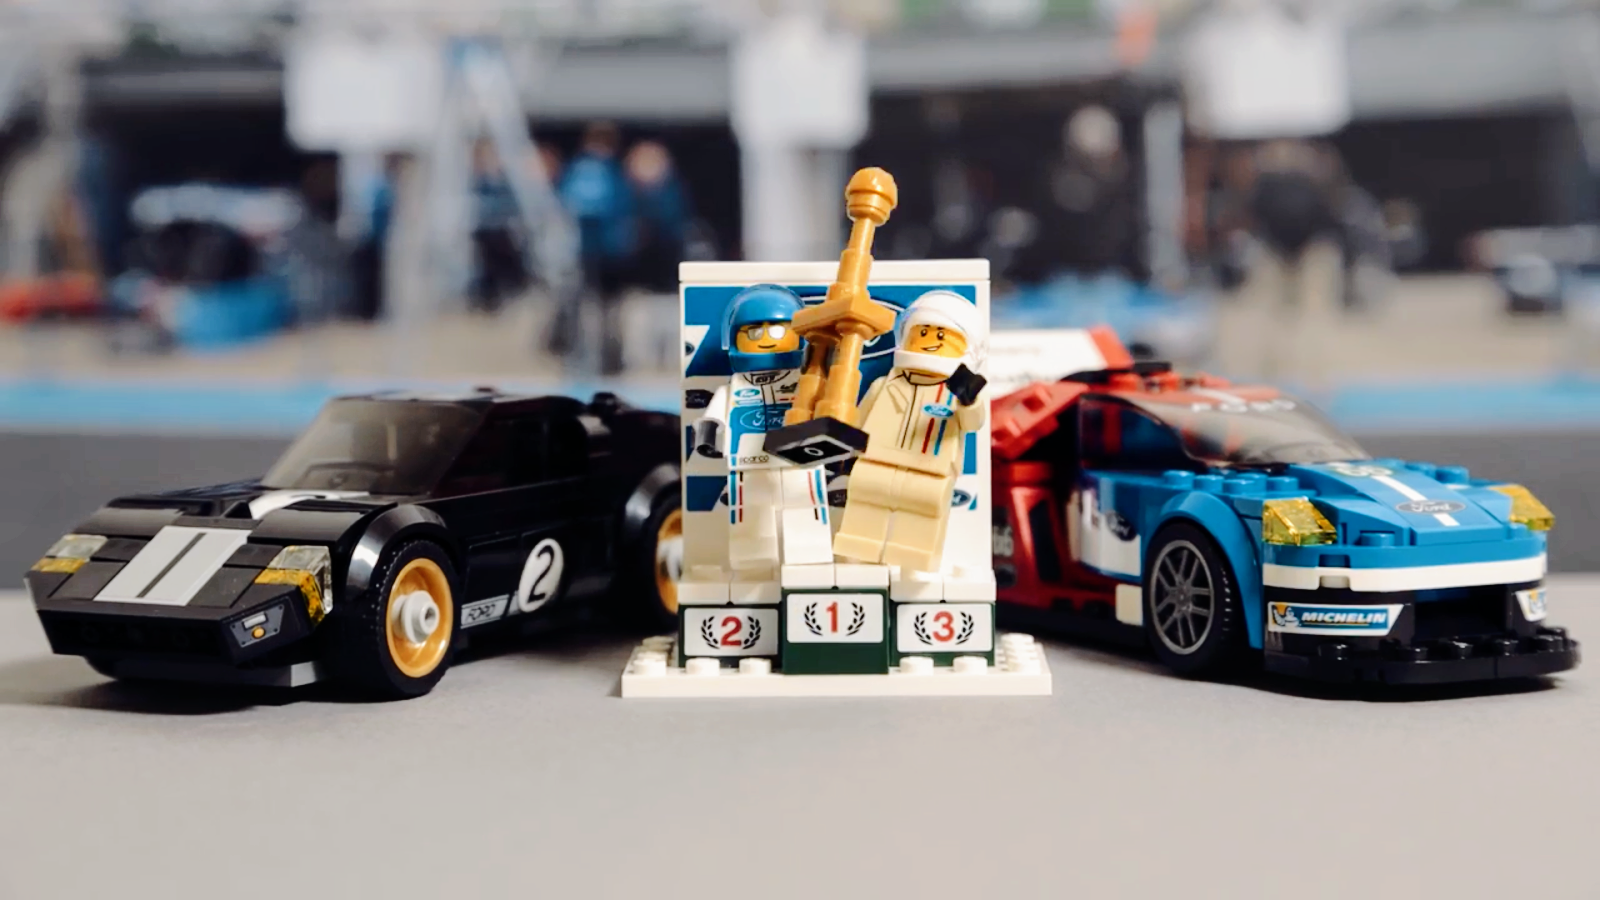 The Iconic Ford Gt And New Ford Gt That Won Le Mans  Hours In  Are Being Brought To Life In Lego Bricks